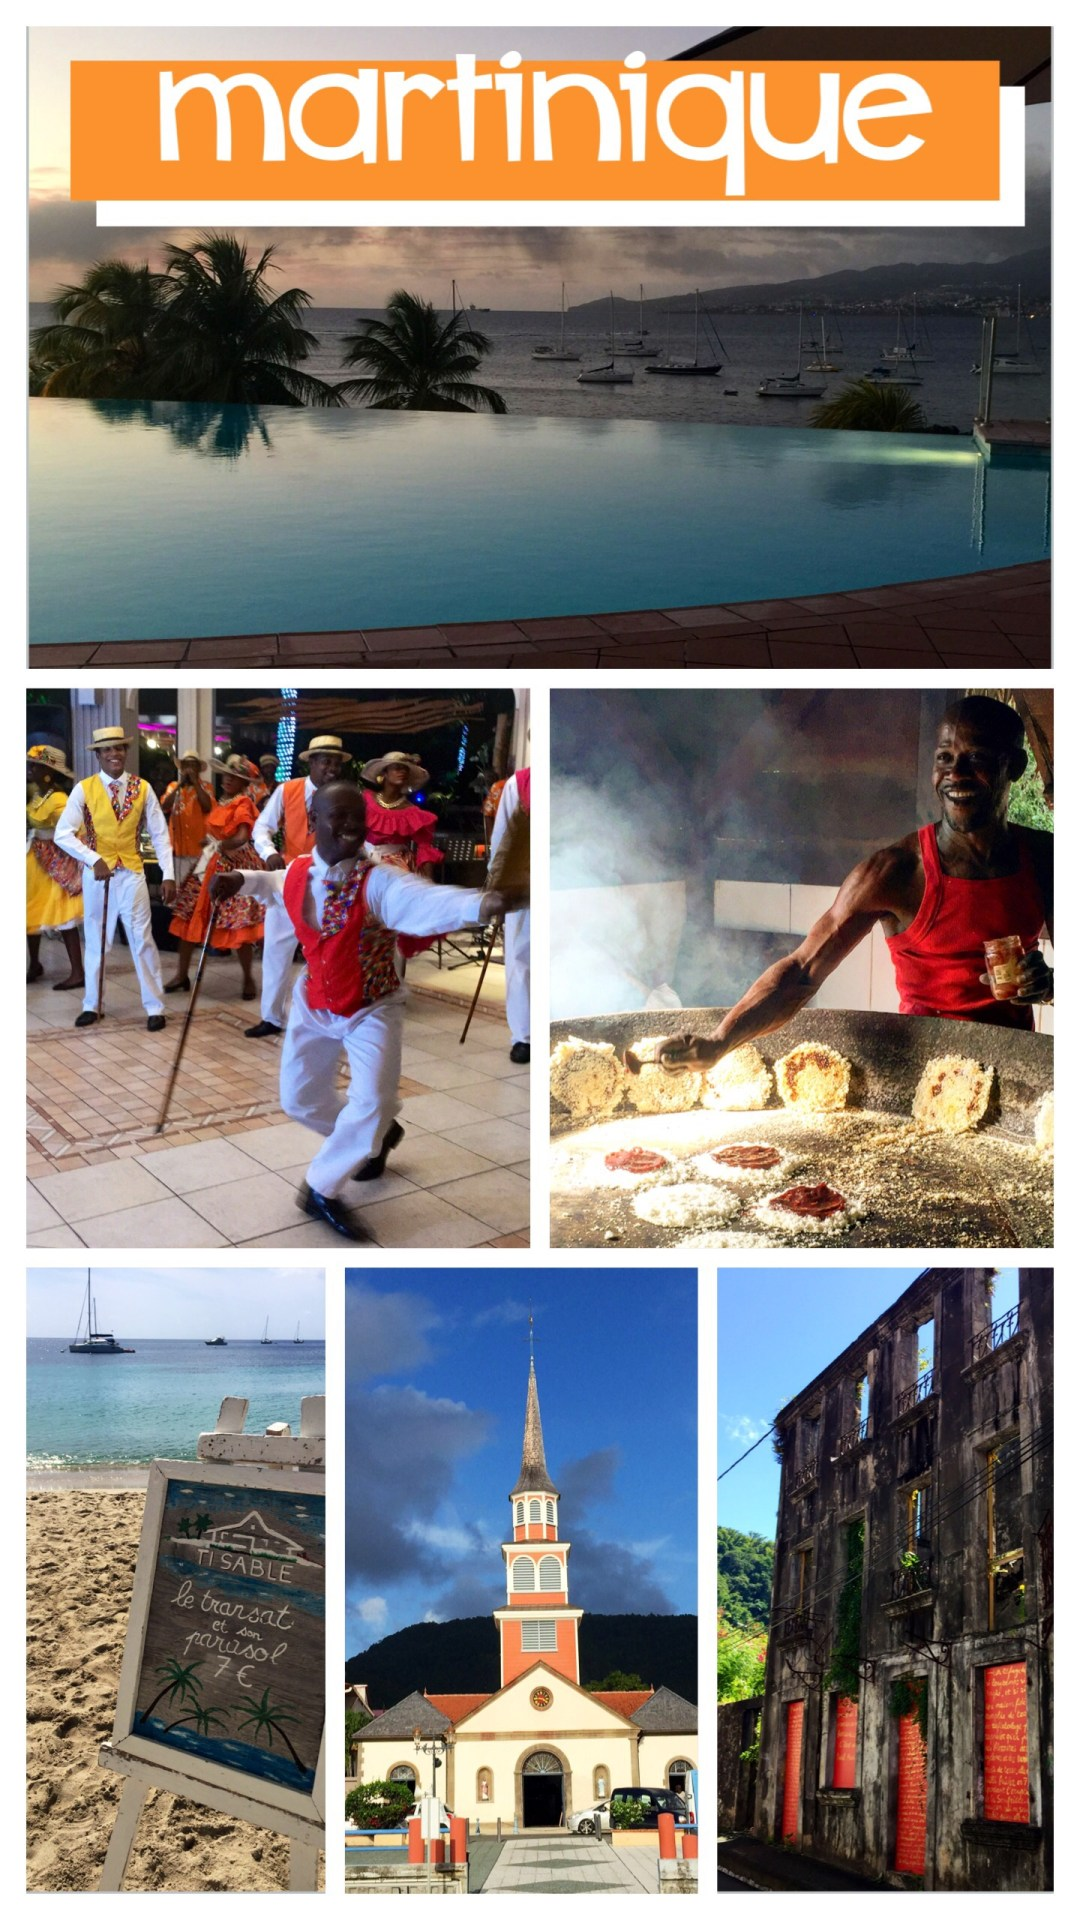 The people and colors of Martinique